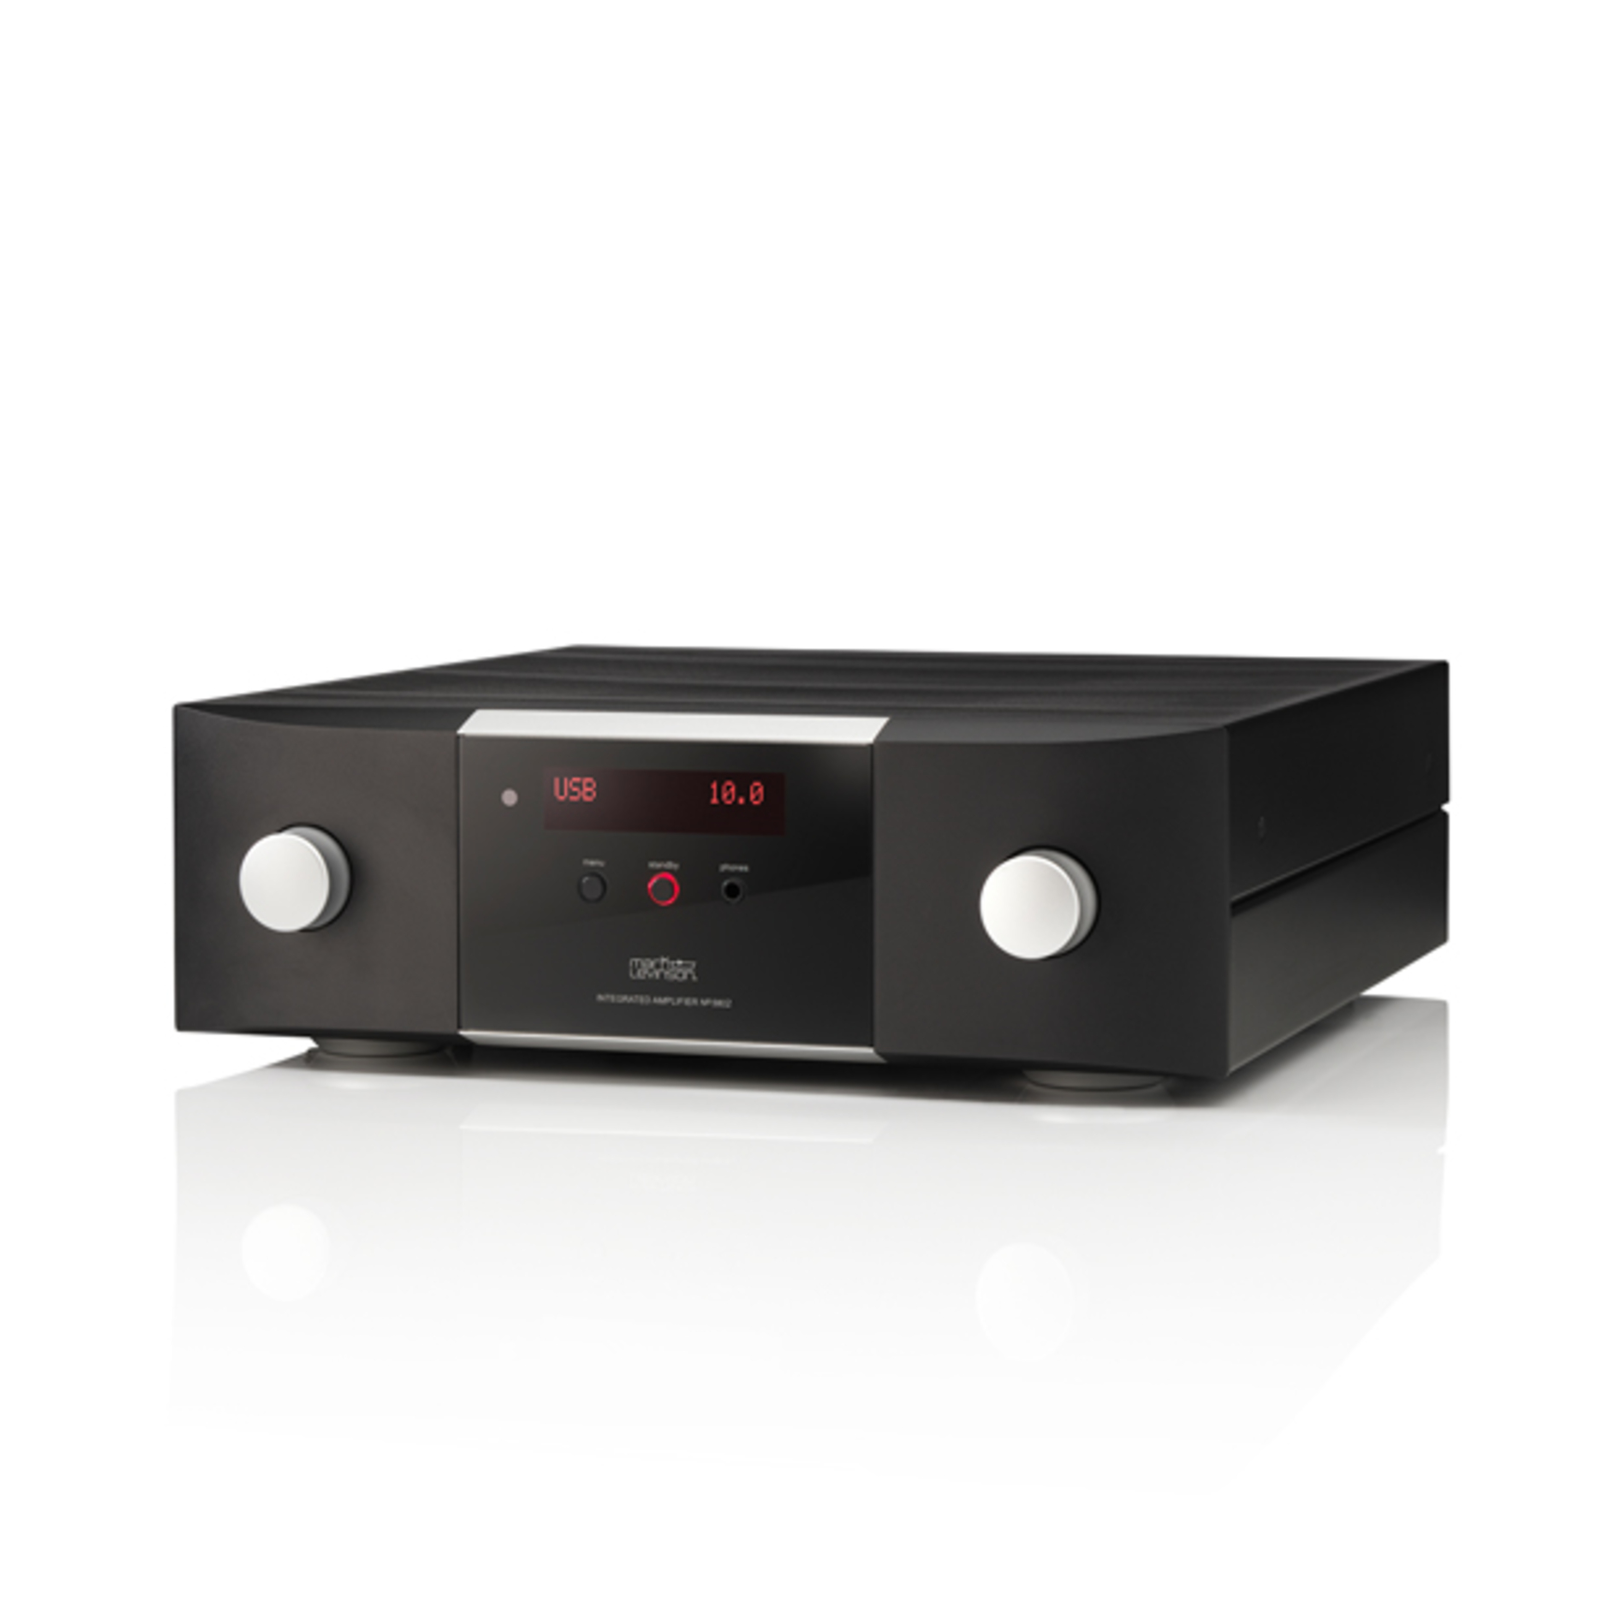 № 5802 - Black / Silver - Integrated Amplifier for Digital sources - Front